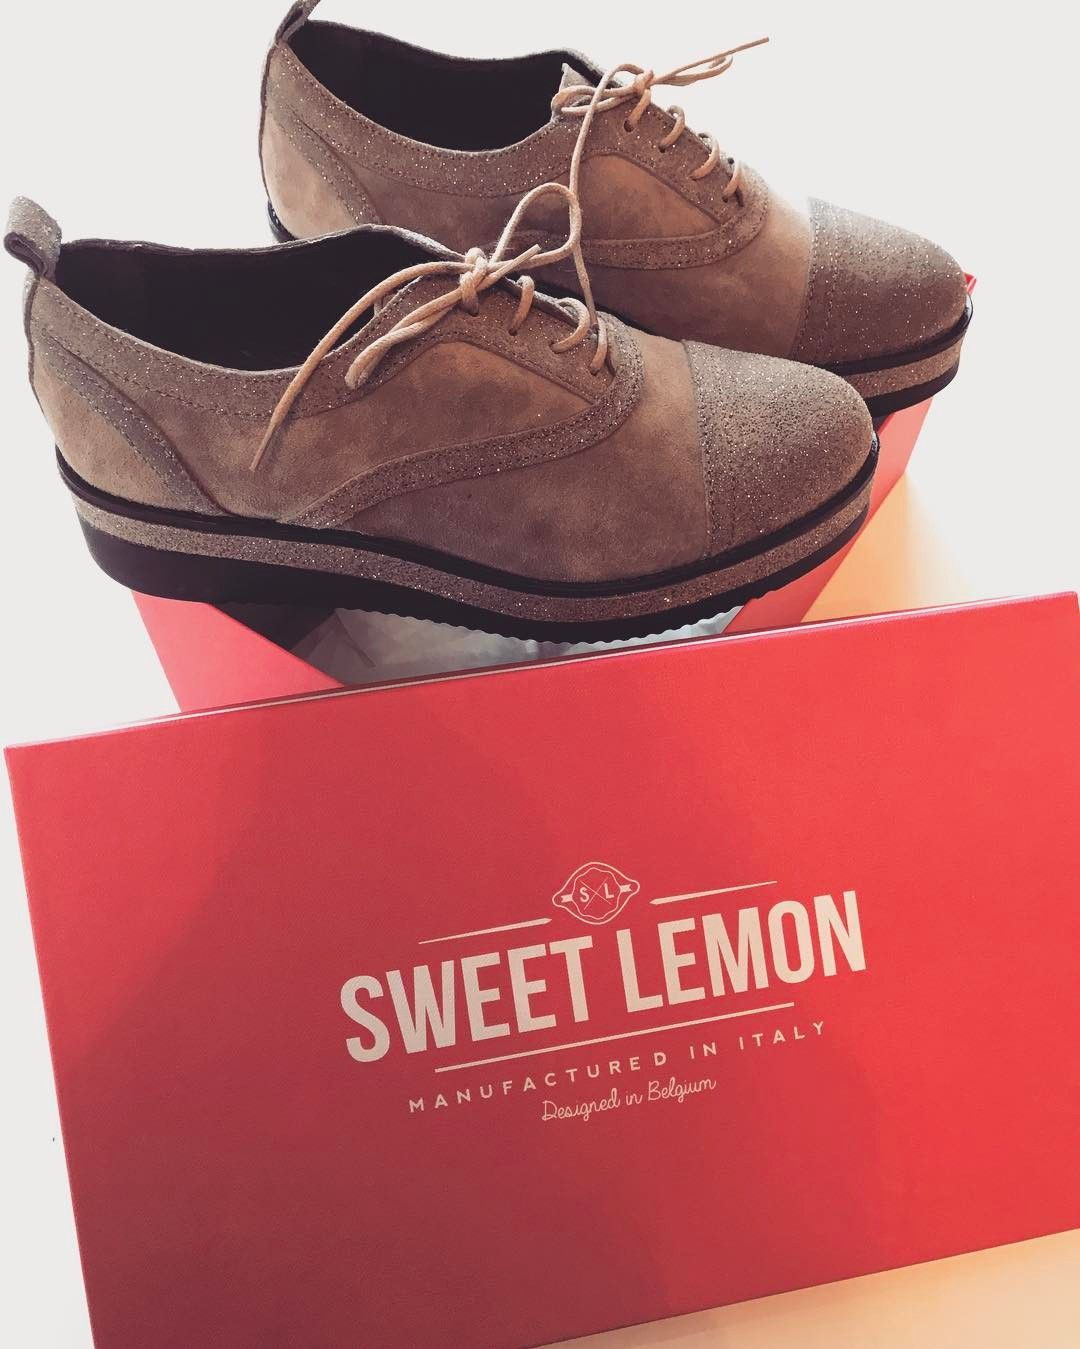 #sweetlemon #newshoes #happygirl #manietluxus #newbrand #lovely